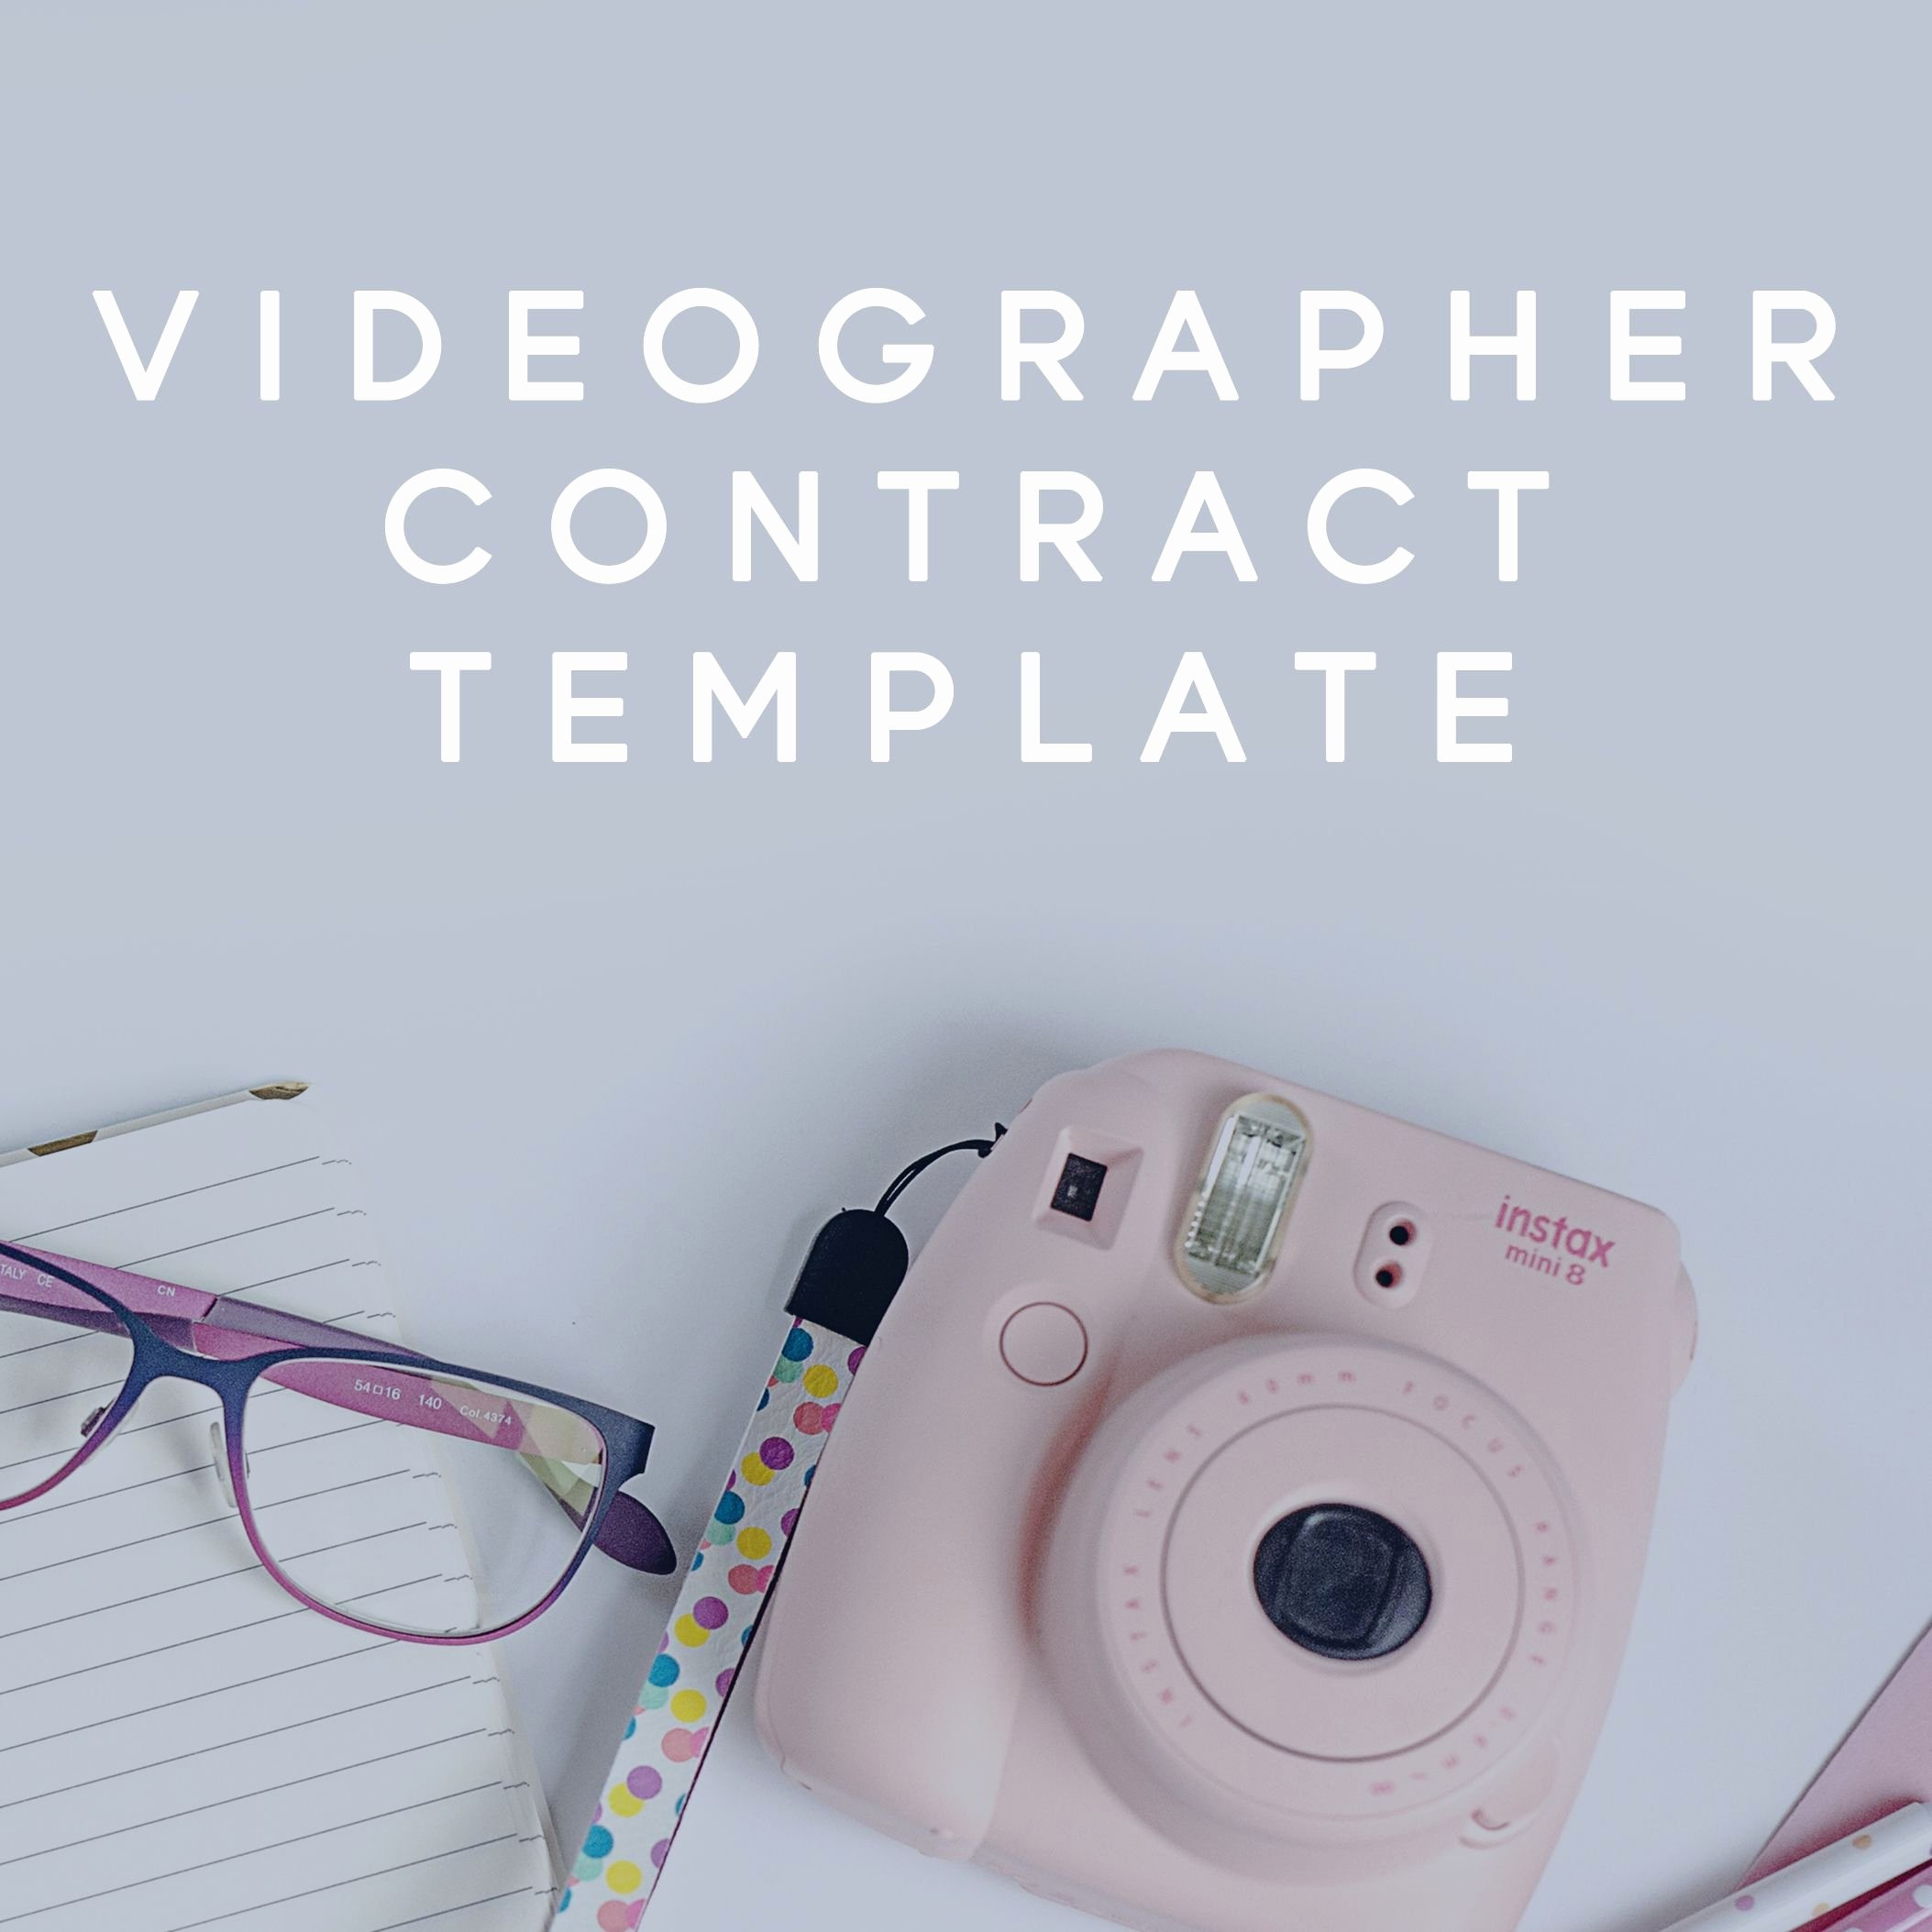 Wedding Videographer Contract Template Inspirational Videography Contract Template for Videographers